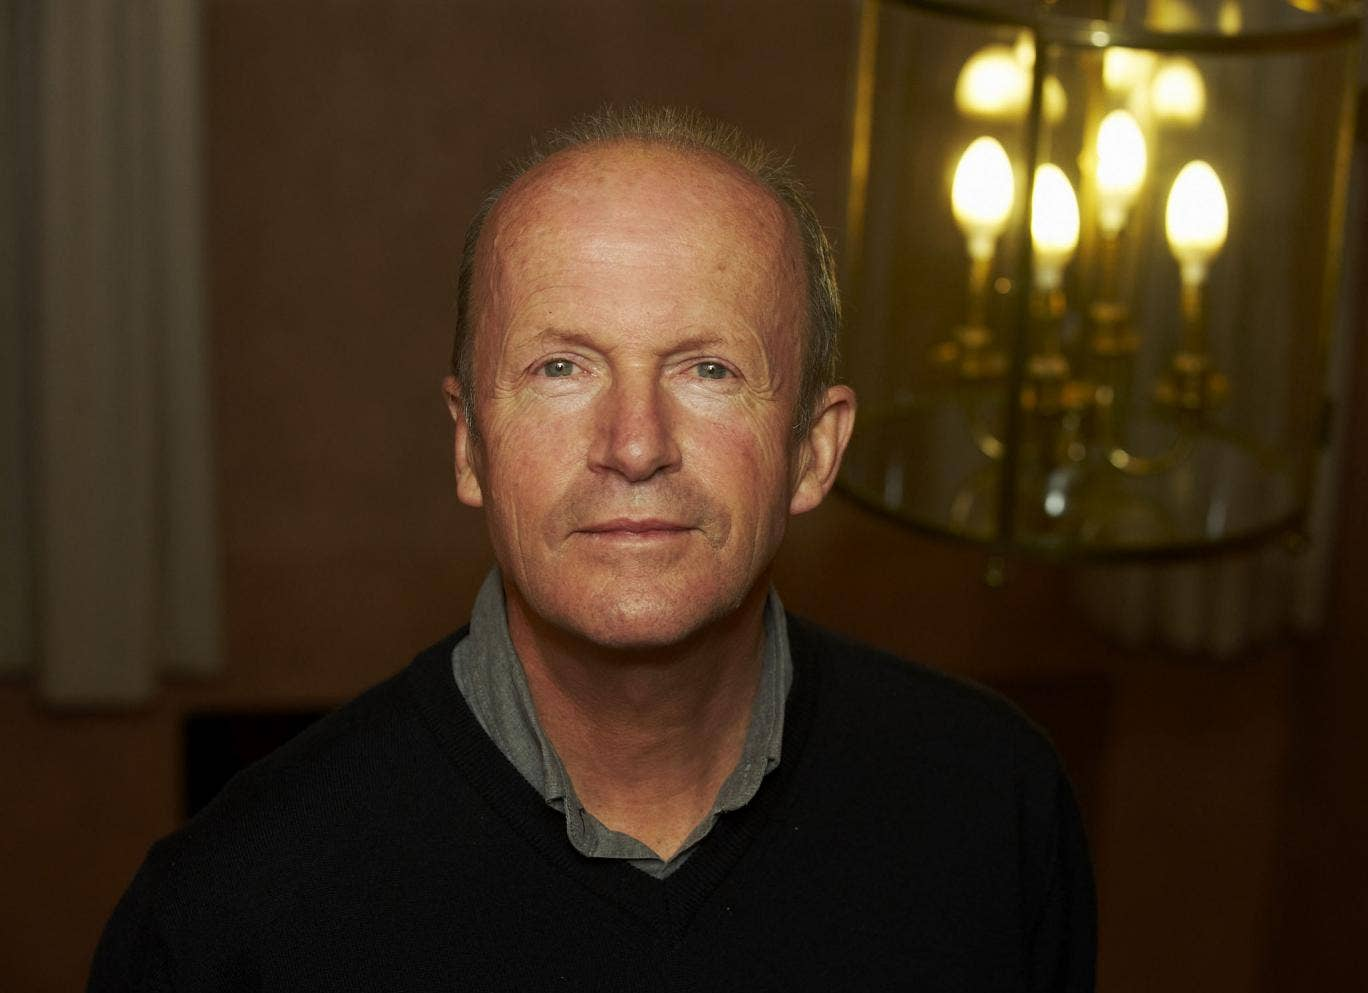 Novelist Jim Crace who has been shortlisted for the Man Booker for Harvest